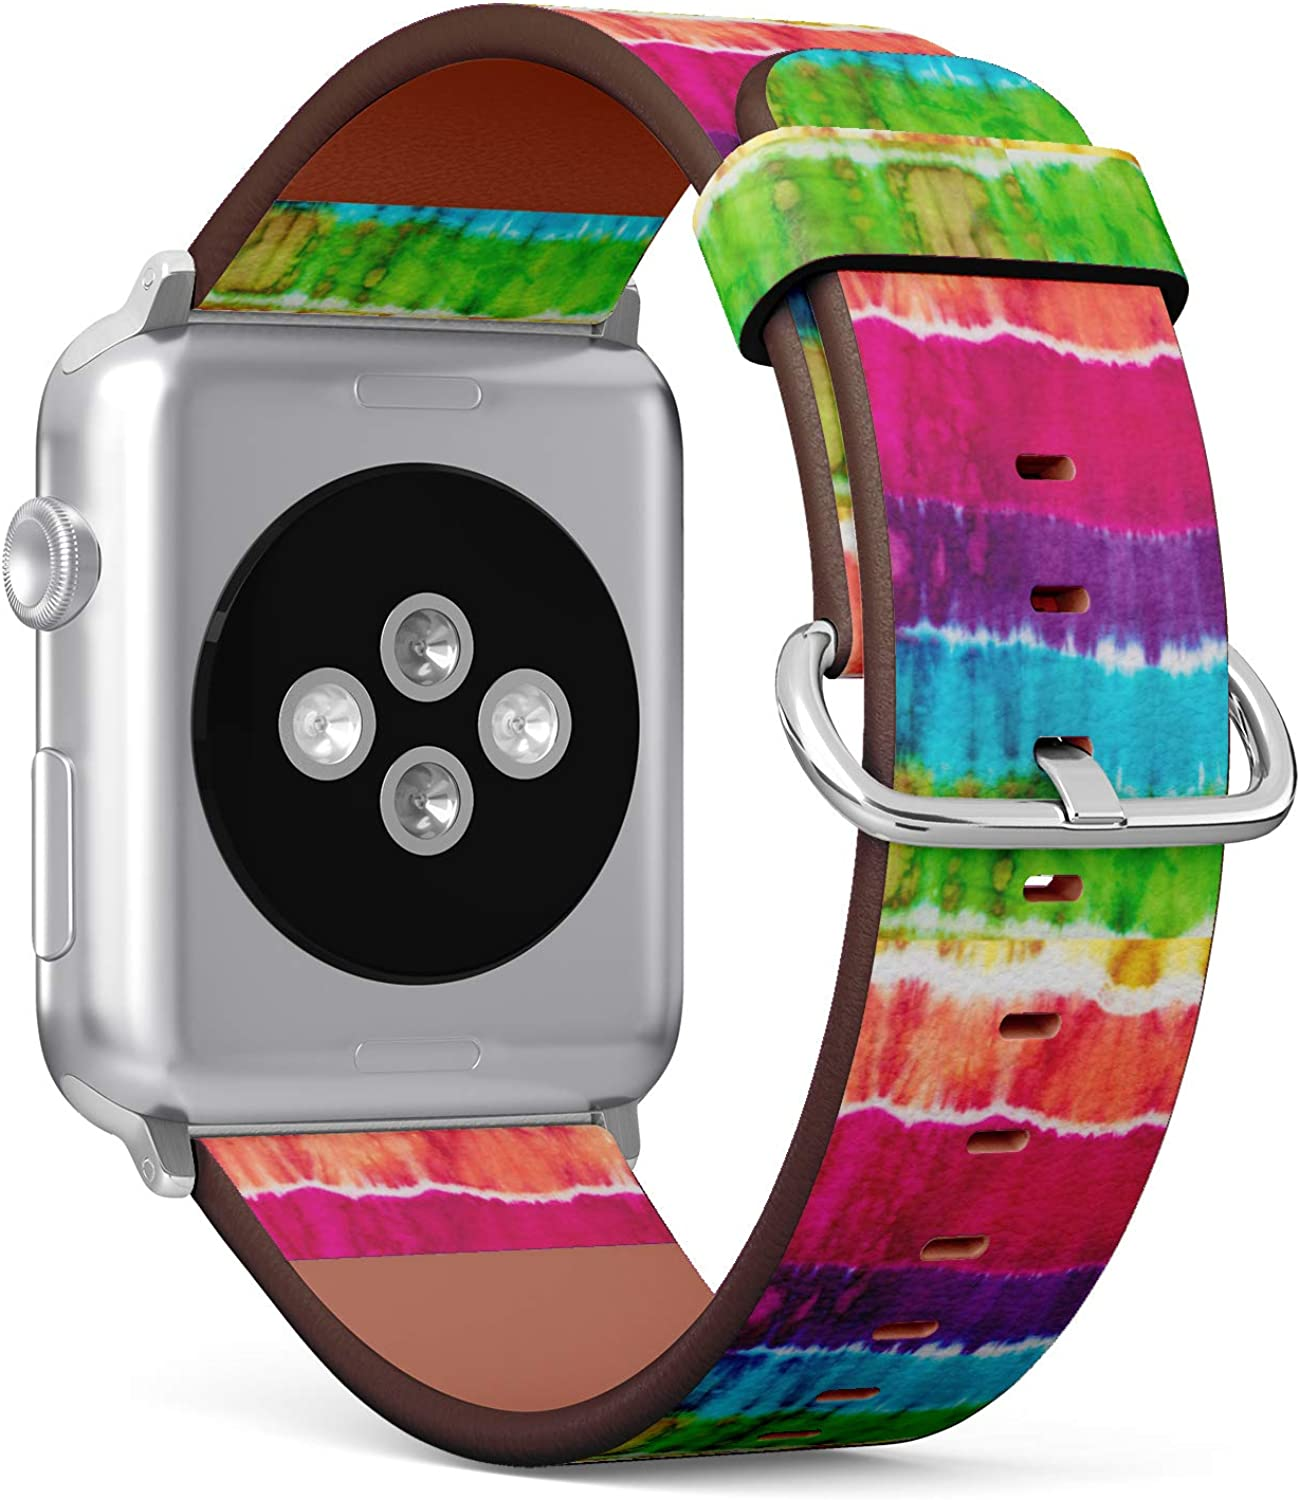 (Hippie tie dye Pattern Abstract Background) Patterned Leather Wristband Strap for Apple Watch Series 4/3/2/1 gen,Replacement for iWatch 38mm / 40mm Bands